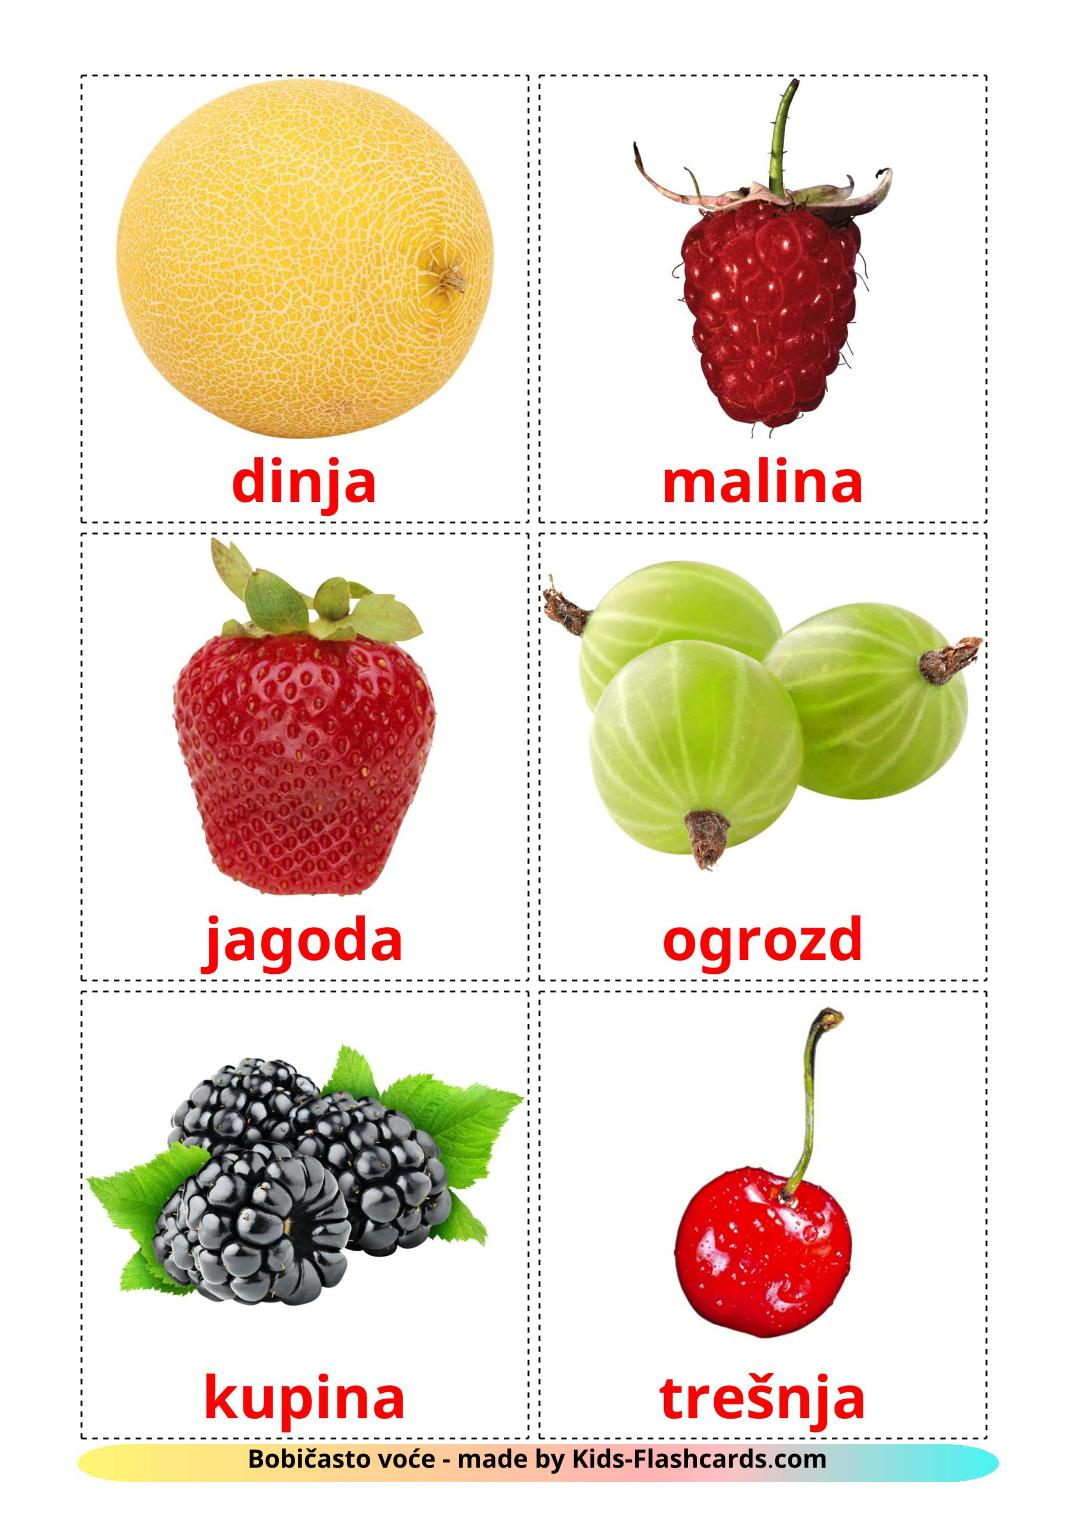 Berries - 11 Free Printable croatian Flashcards